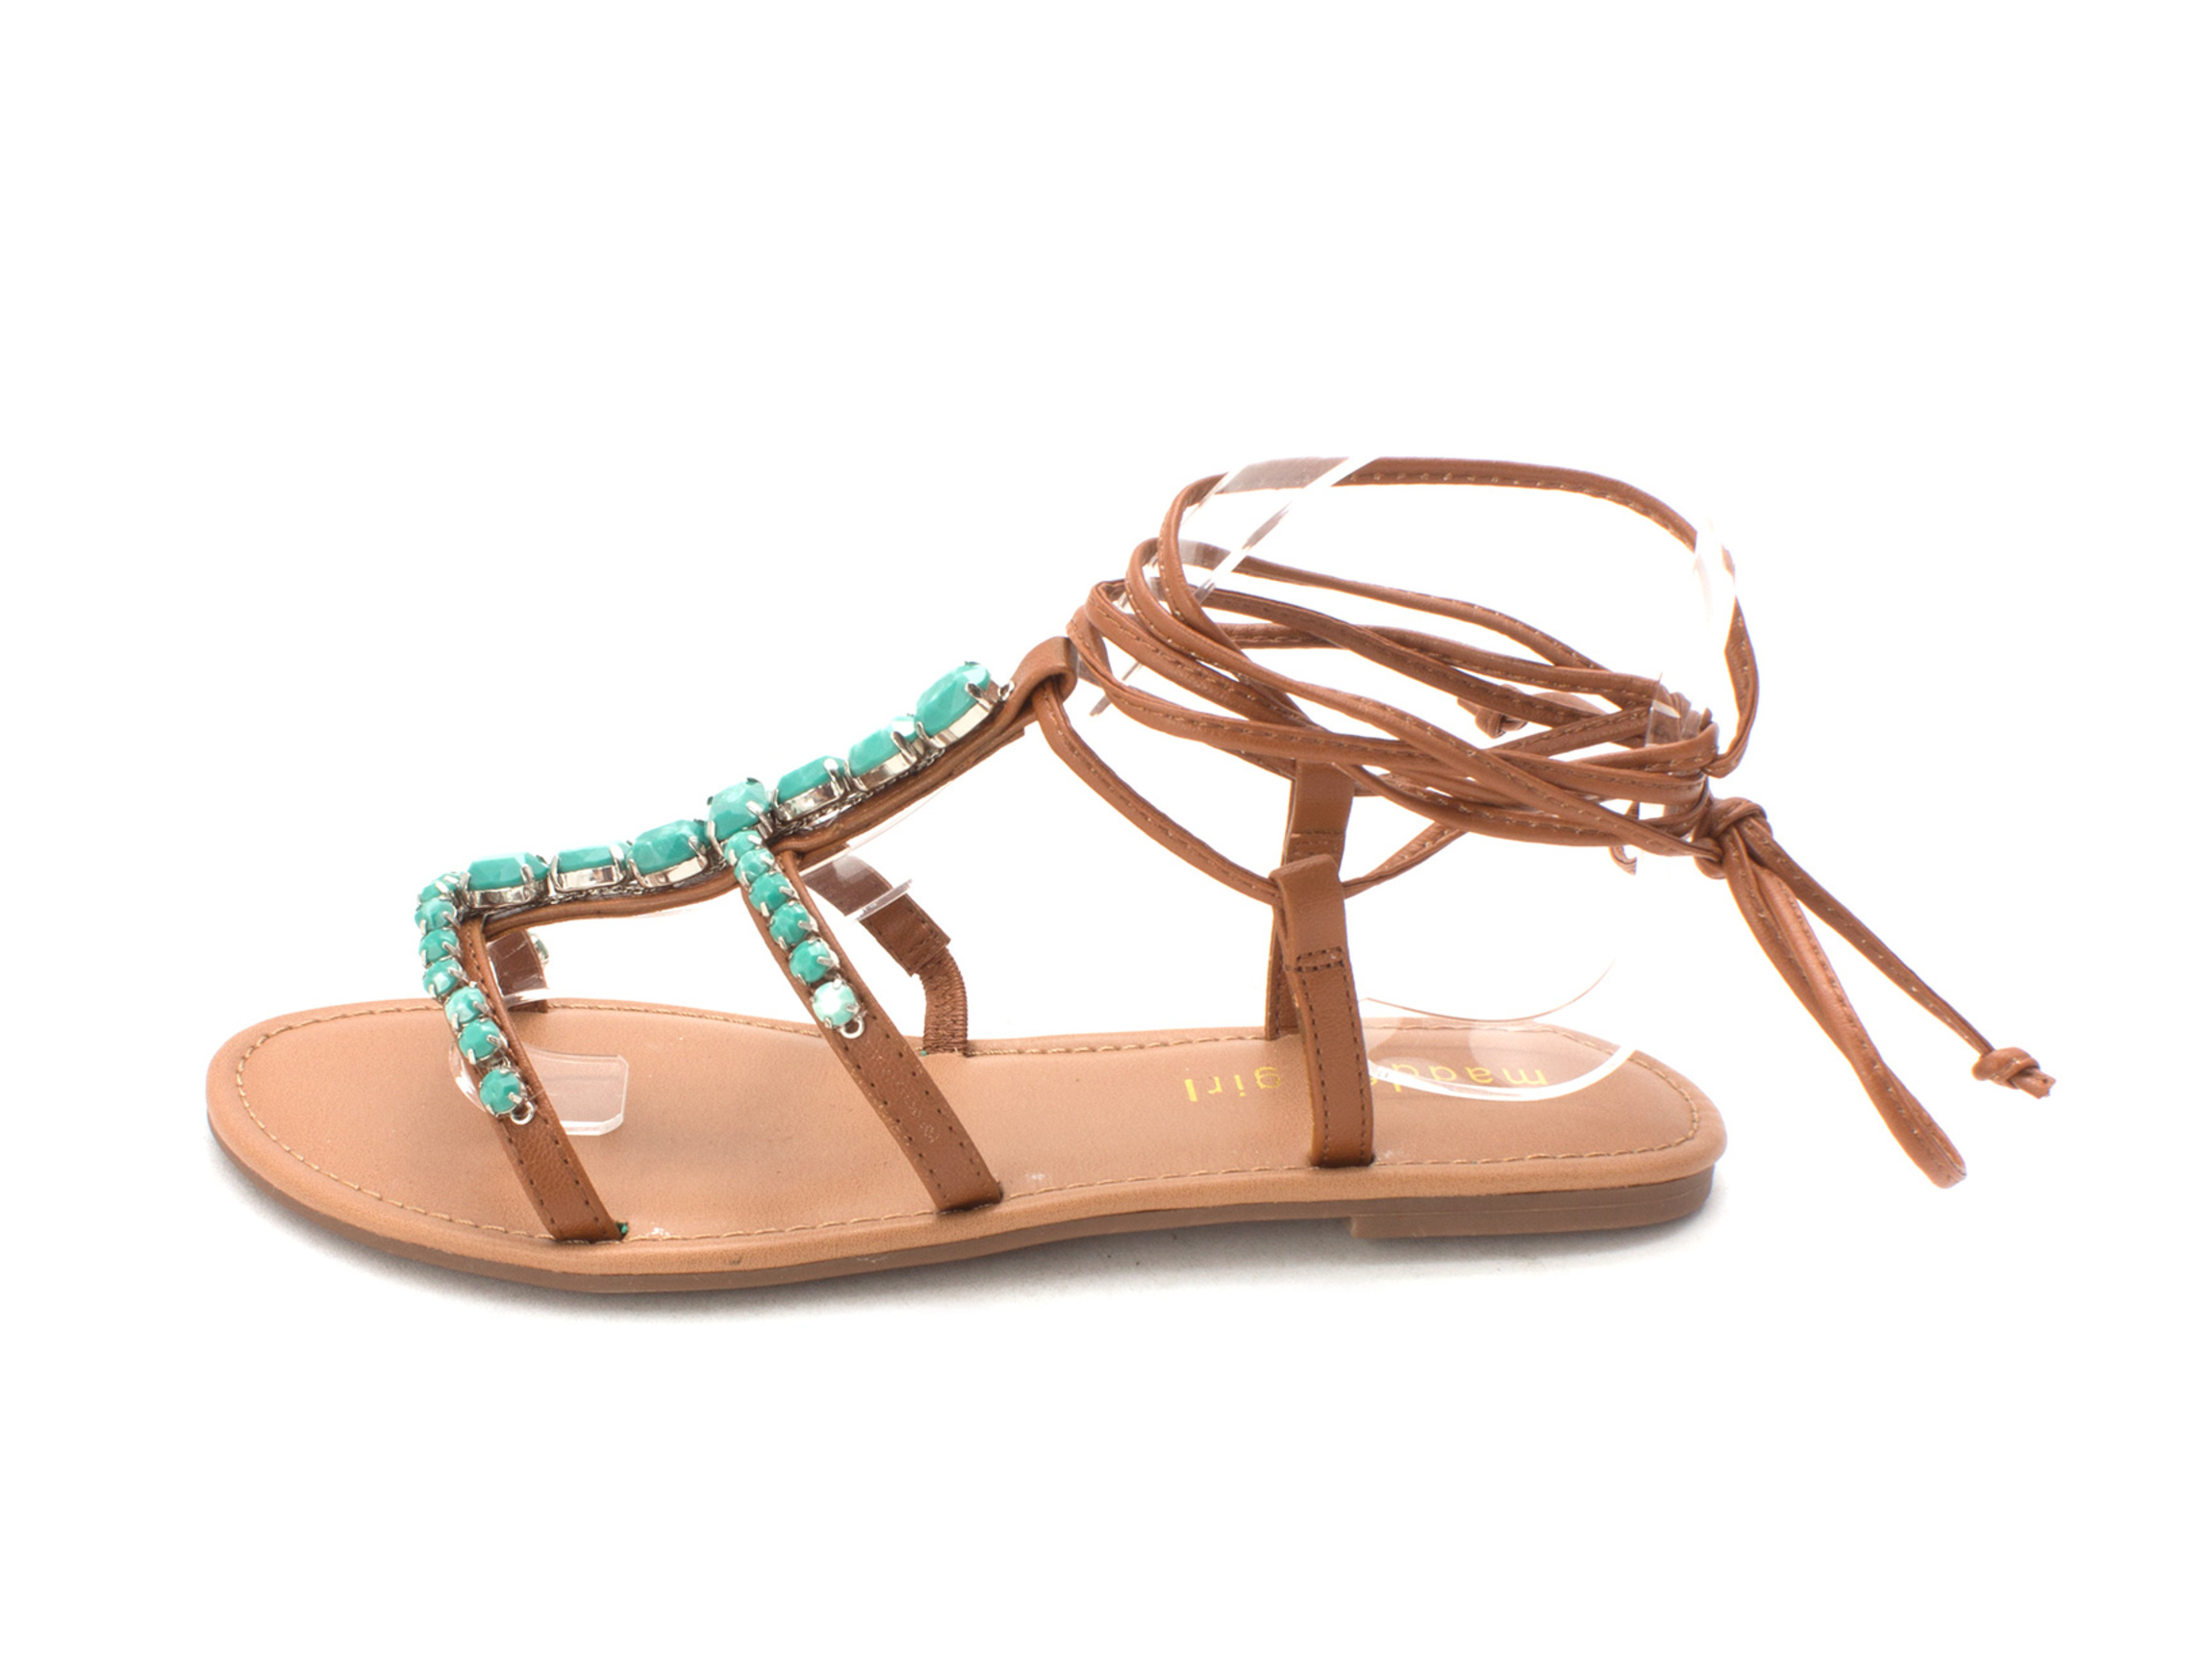 947494f53d74 Madden Girl Womens Kalipsoo Open Toe Casual T-Strap Sandals